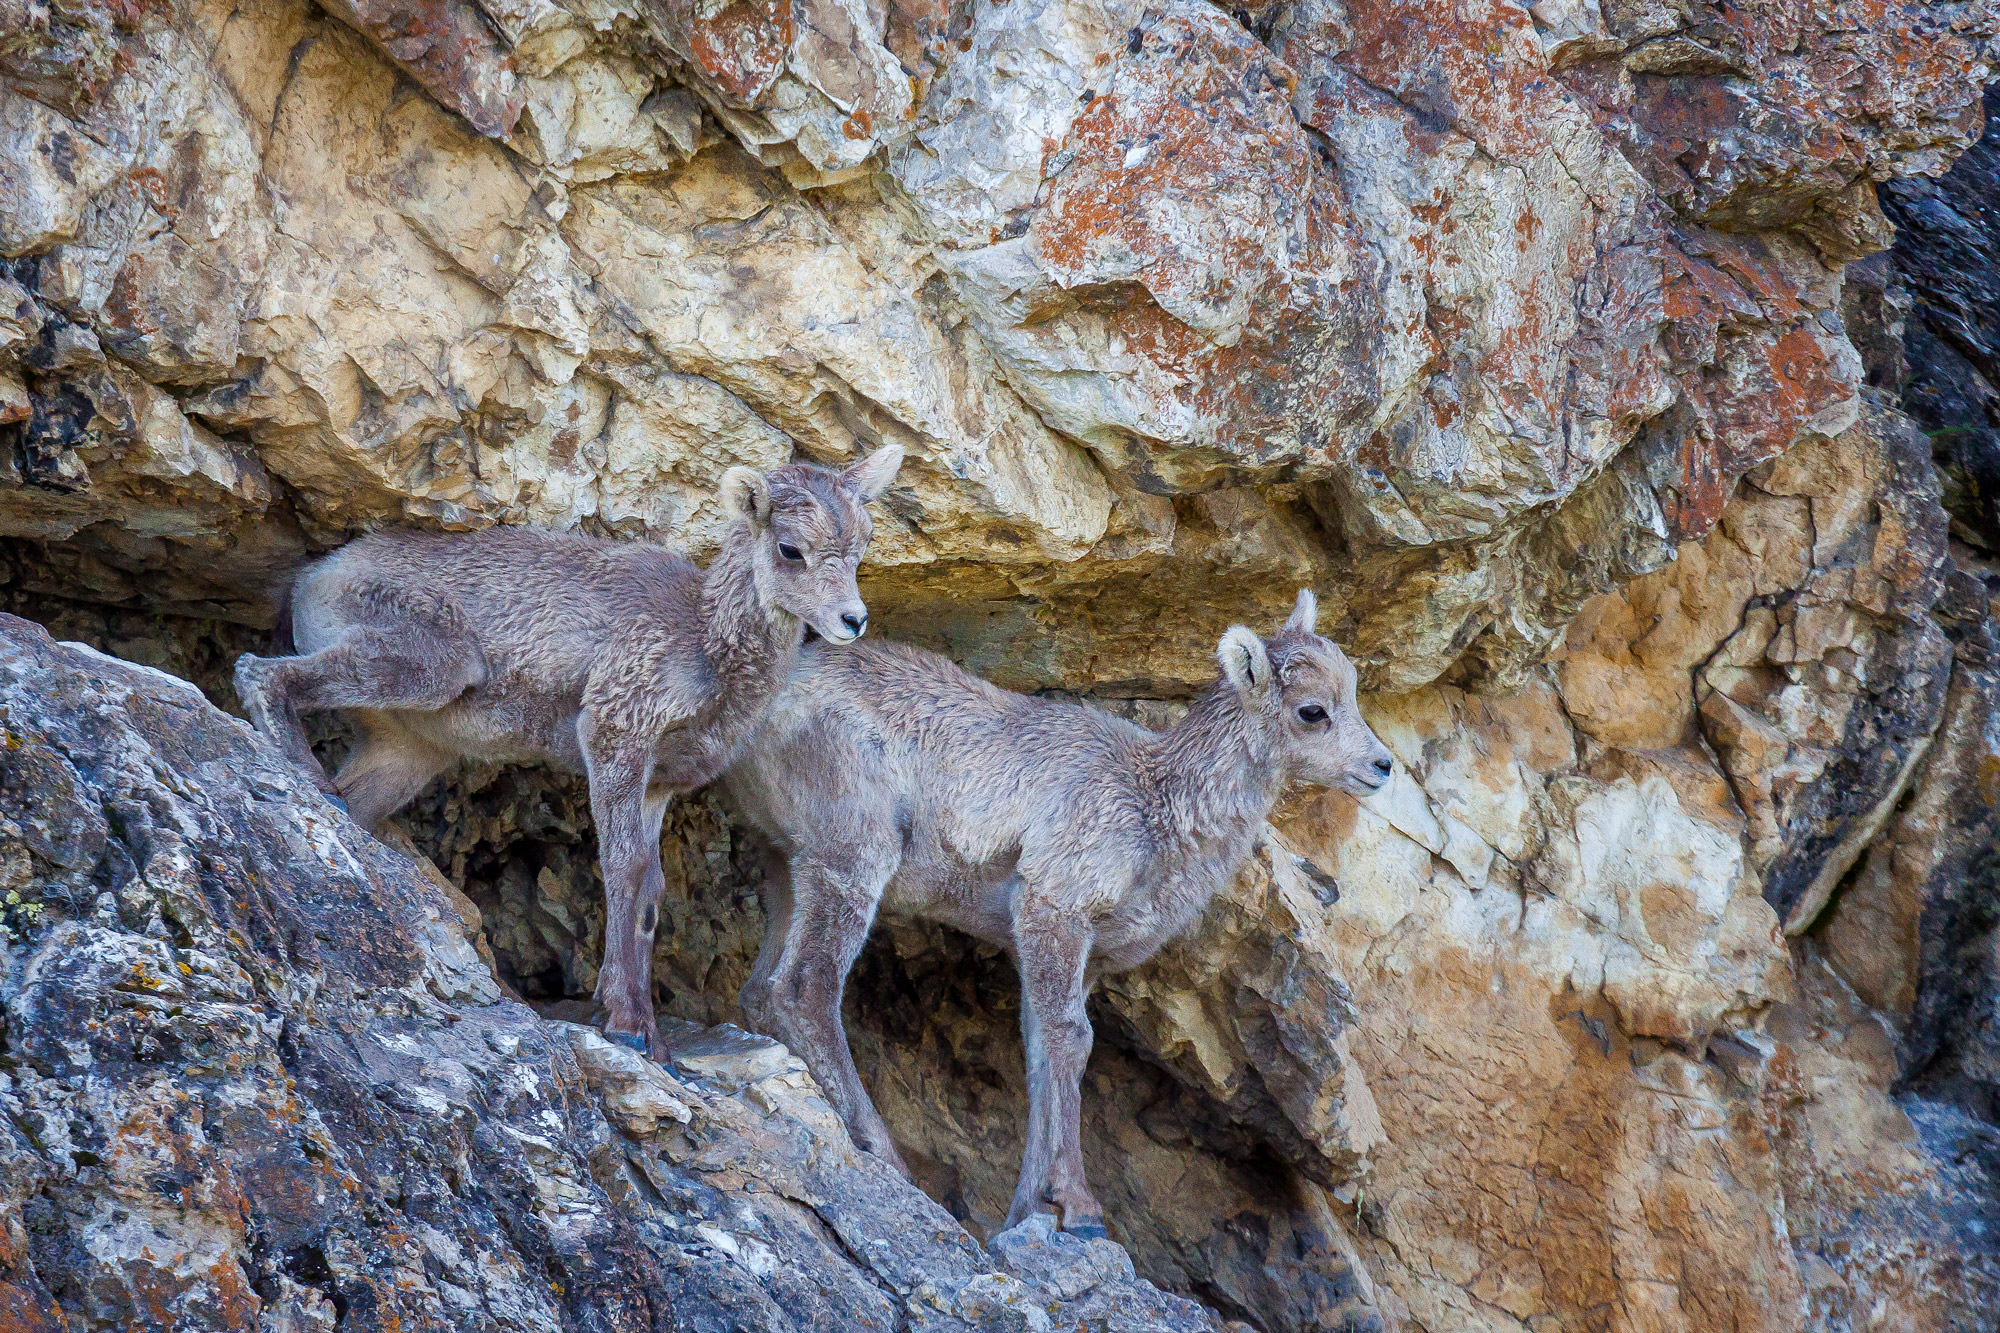 Bighorn, Sheep, Lamb, Canada, photo